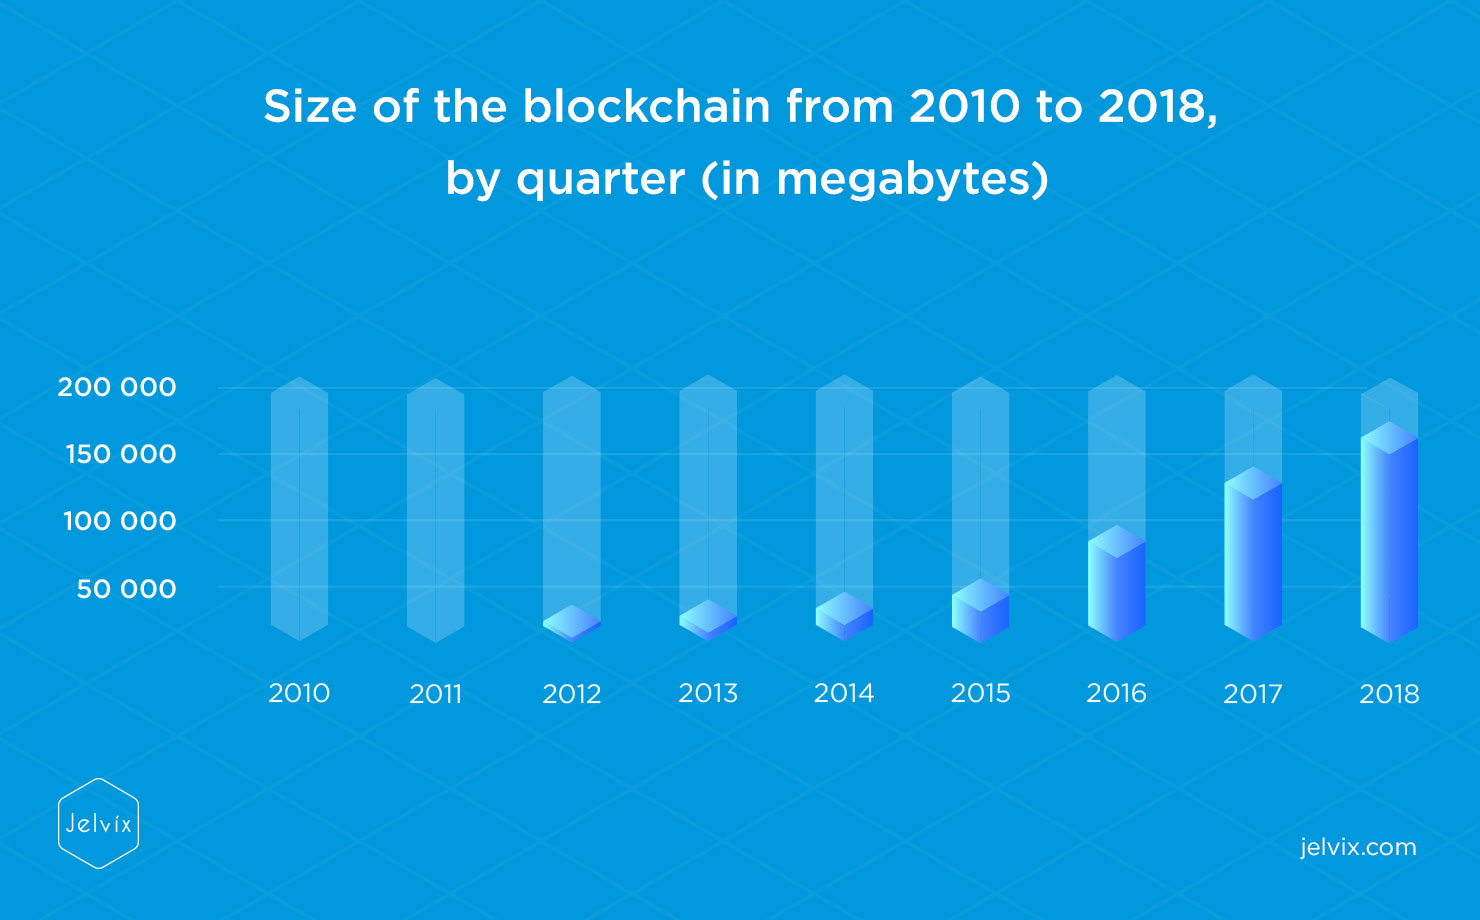 Size of the blockchain